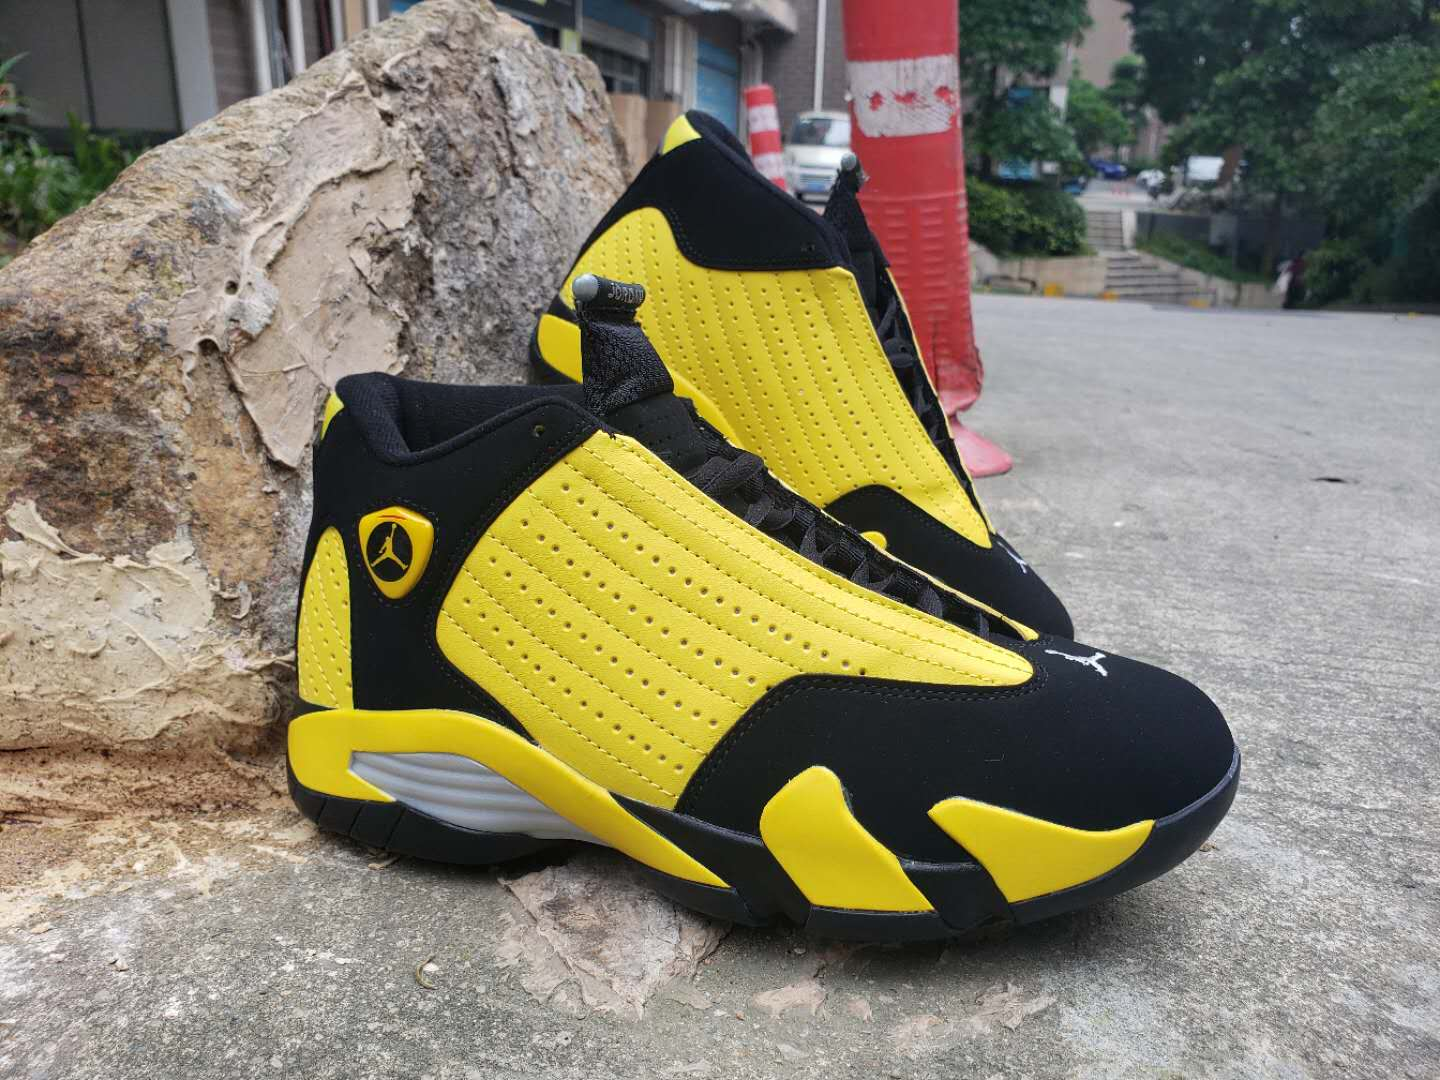 2019 Air Jordan 14 Retro Bumblebee Shoes